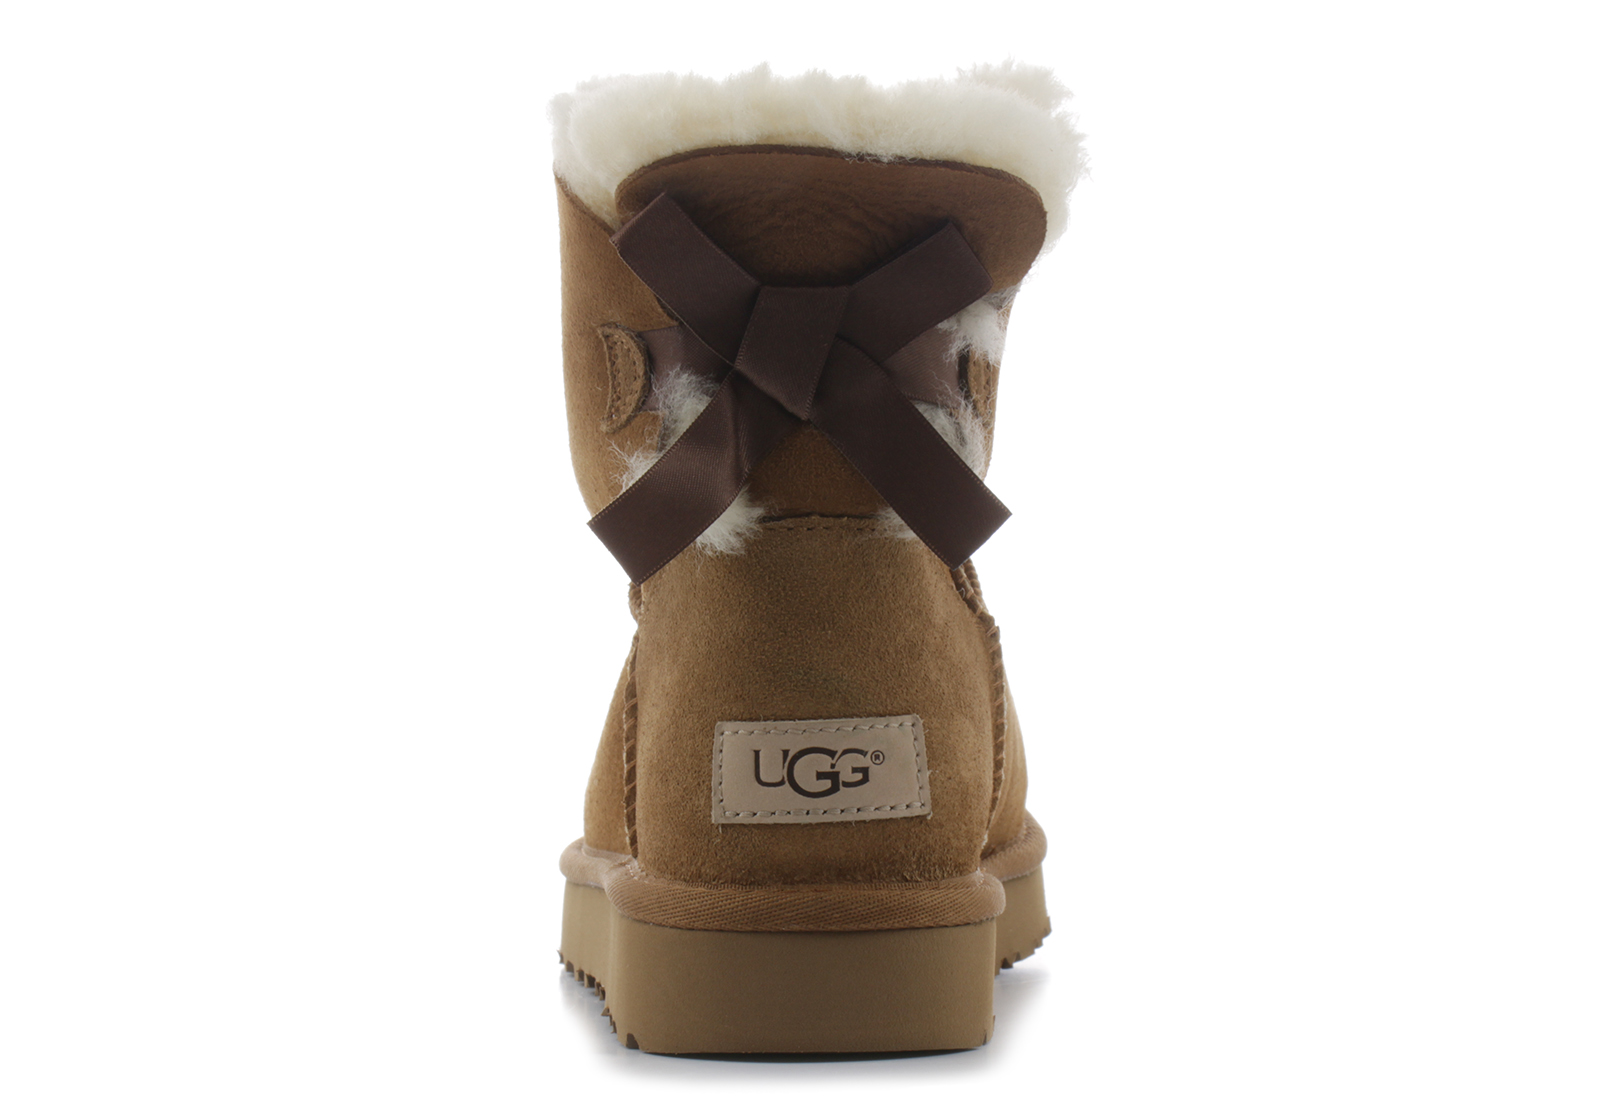 eb840311f2e Ugg Boots - Mini Bailey Bow Ii - 1016501-CHE - Online shop for sneakers,  shoes and boots